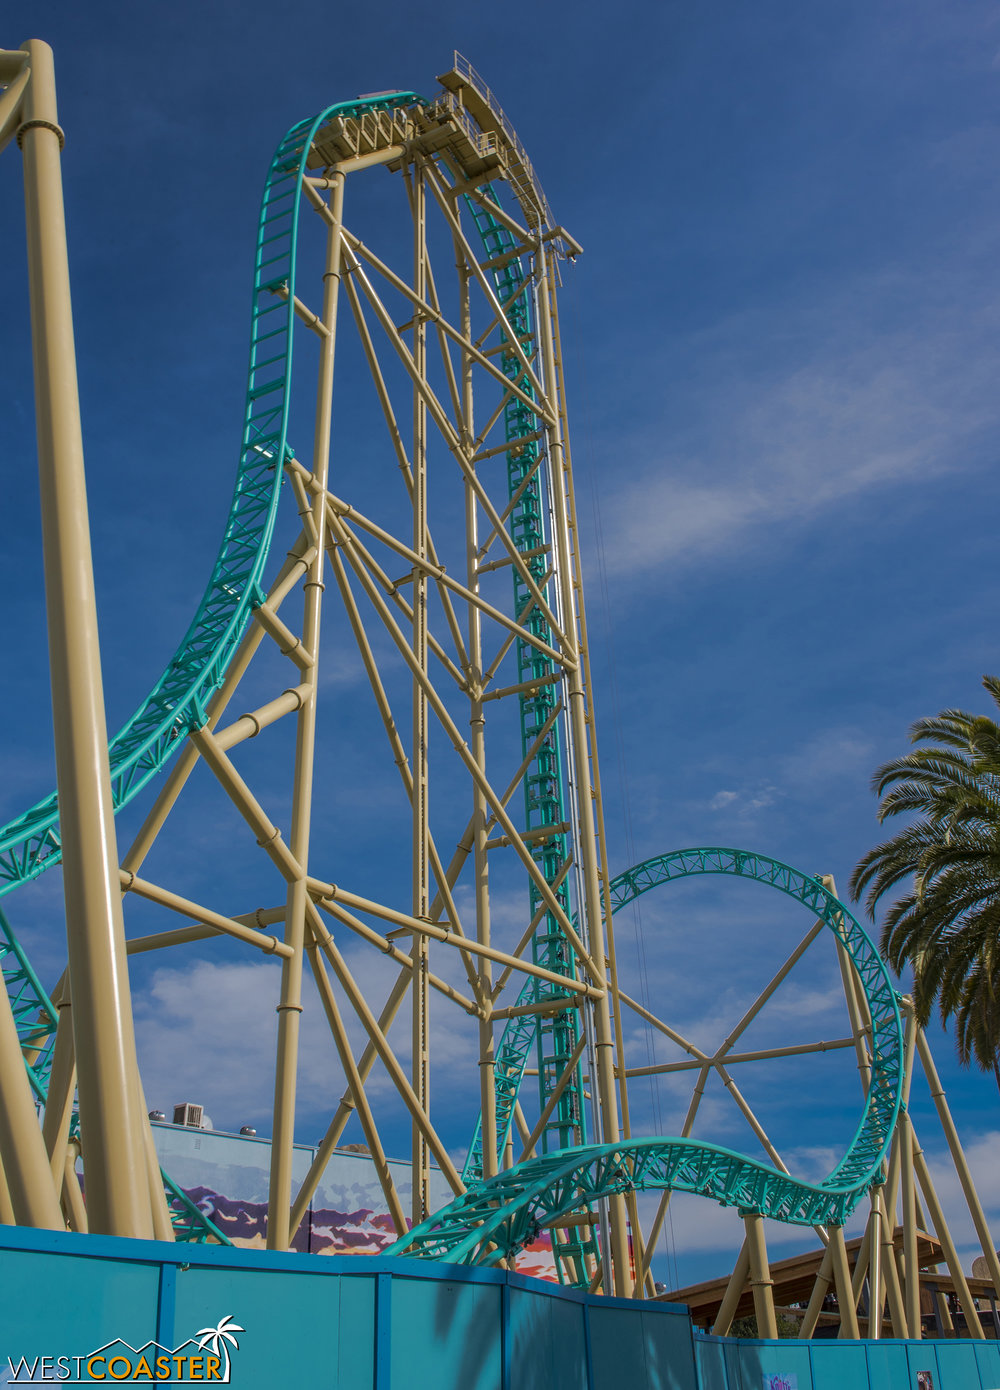 And the lift hill remains a member of Knott's Boardwalk Phallicoaster Club.